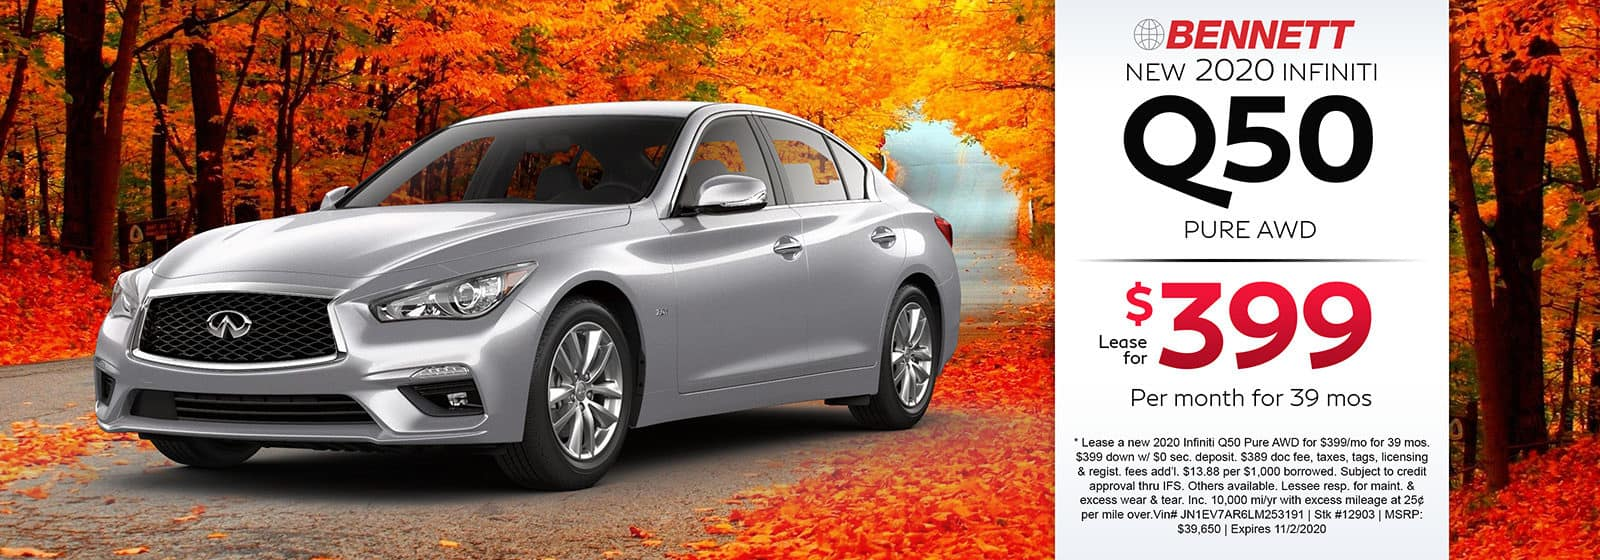 Lease a new 2020 INFINITI Q50 Pure AWD for $399 a month for 39 months. Or get special 0% APR financing for up to 72 months